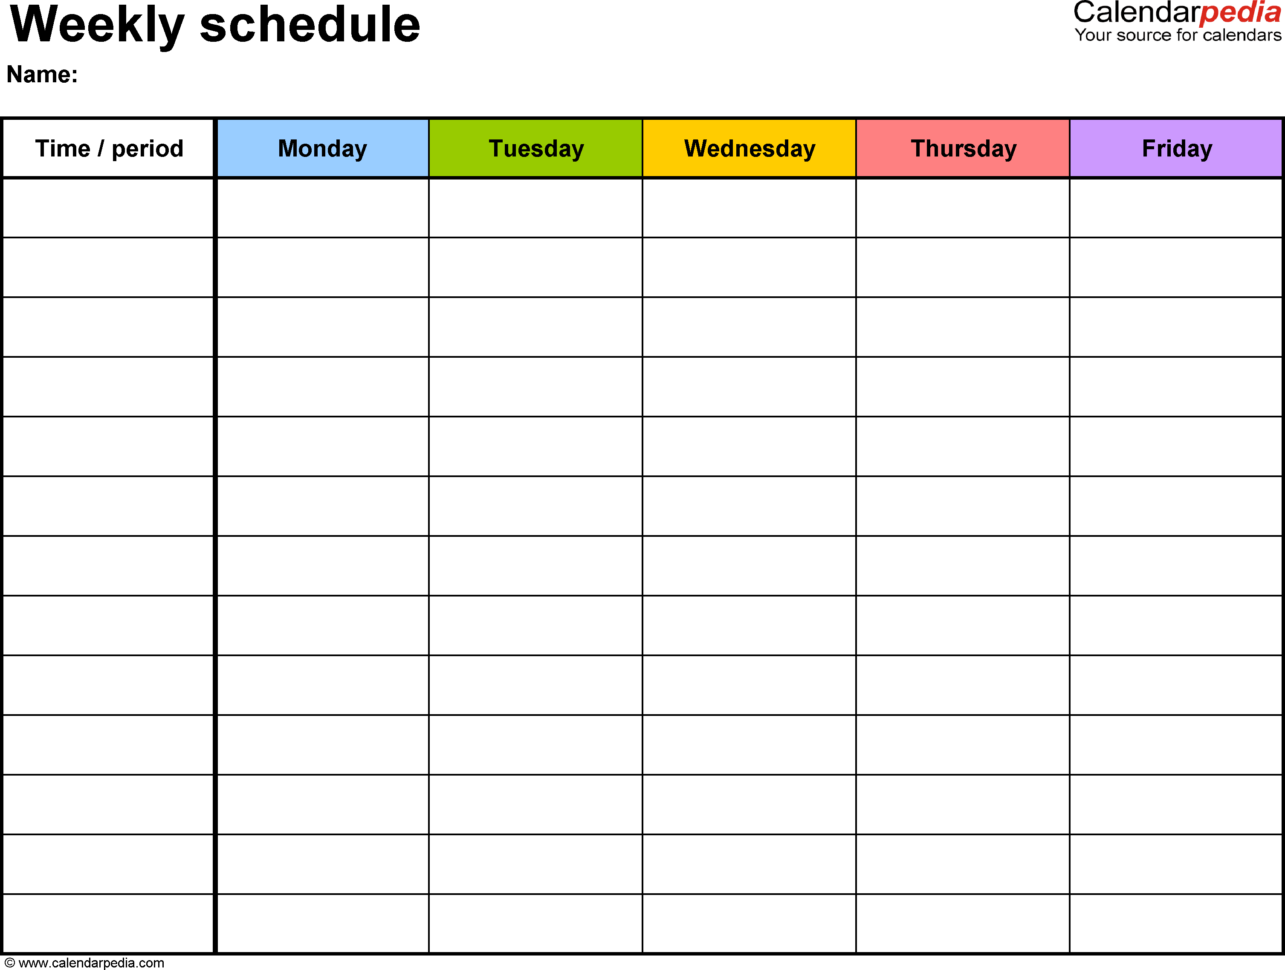 Excel Spreadsheet Schedule Intended For Free Weekly Schedule Templates For Excel  18 Templates